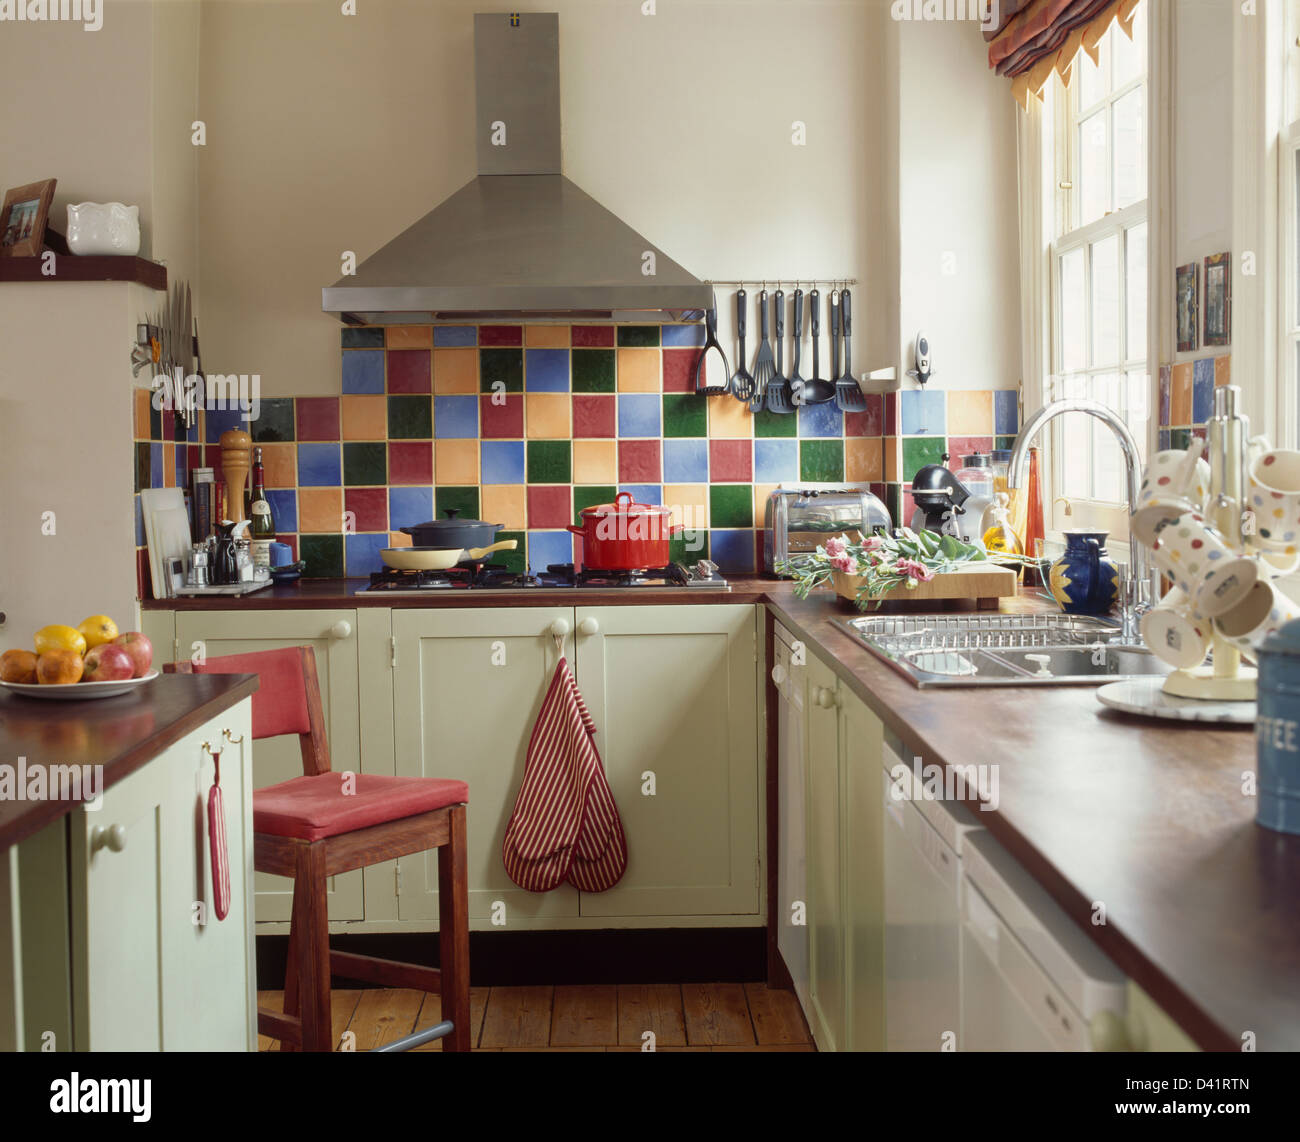 Stainless Steel Extractor And Multi Colored Tiled Splash